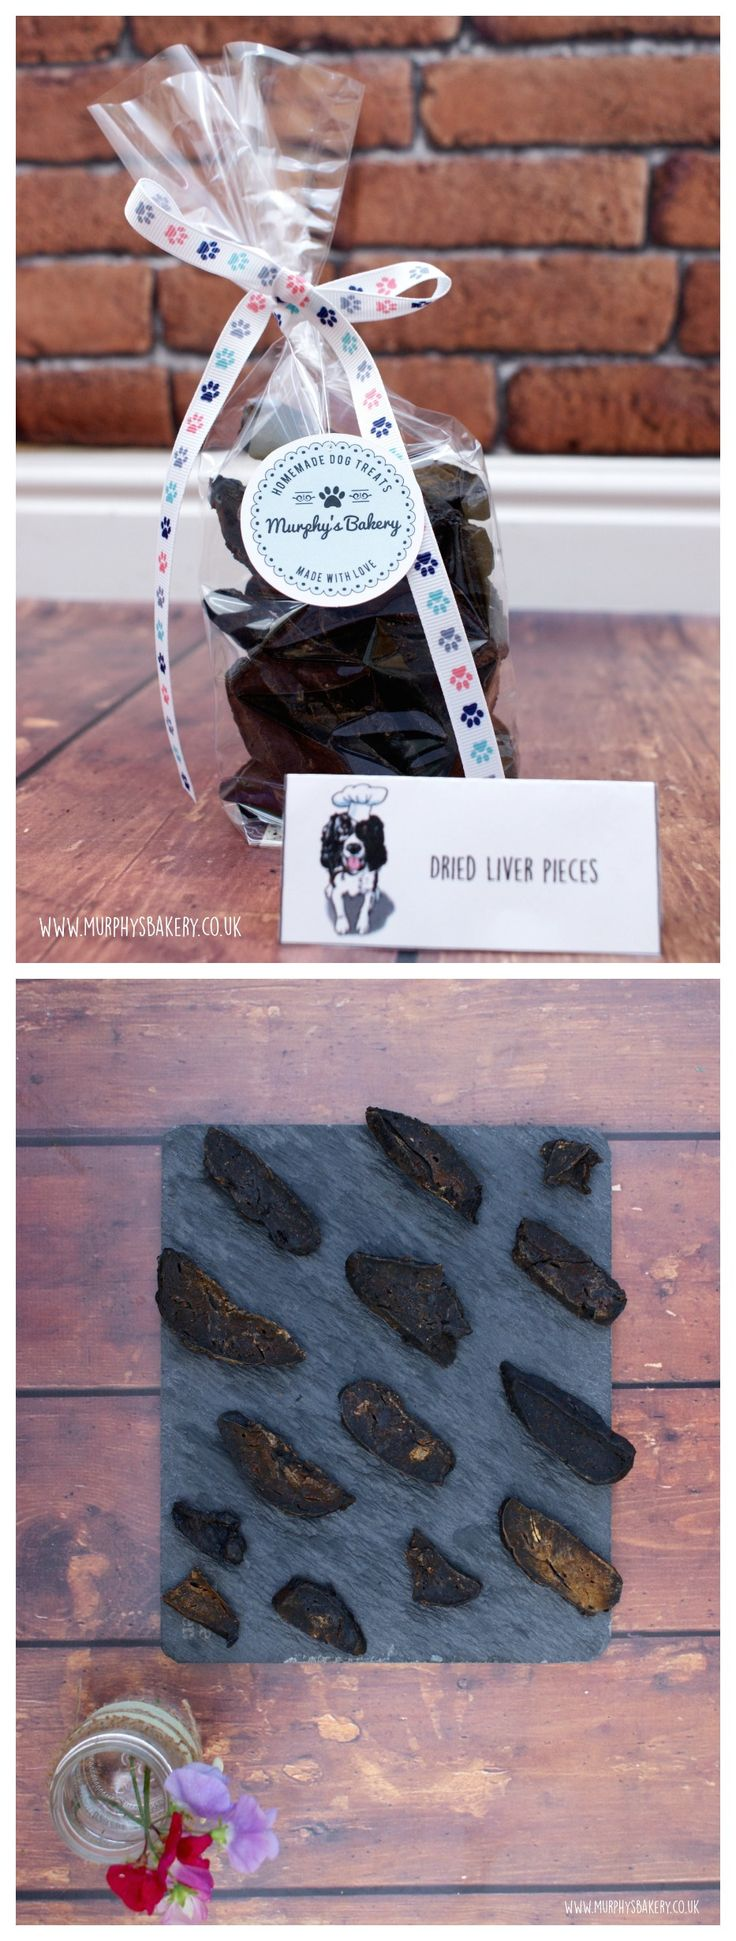 Murphy's Bakery slices of dried British beef liver. 100% natural and delicious! Have a look on our website for more details! #dogtreats #dogs #healthy #naturaldogtreats